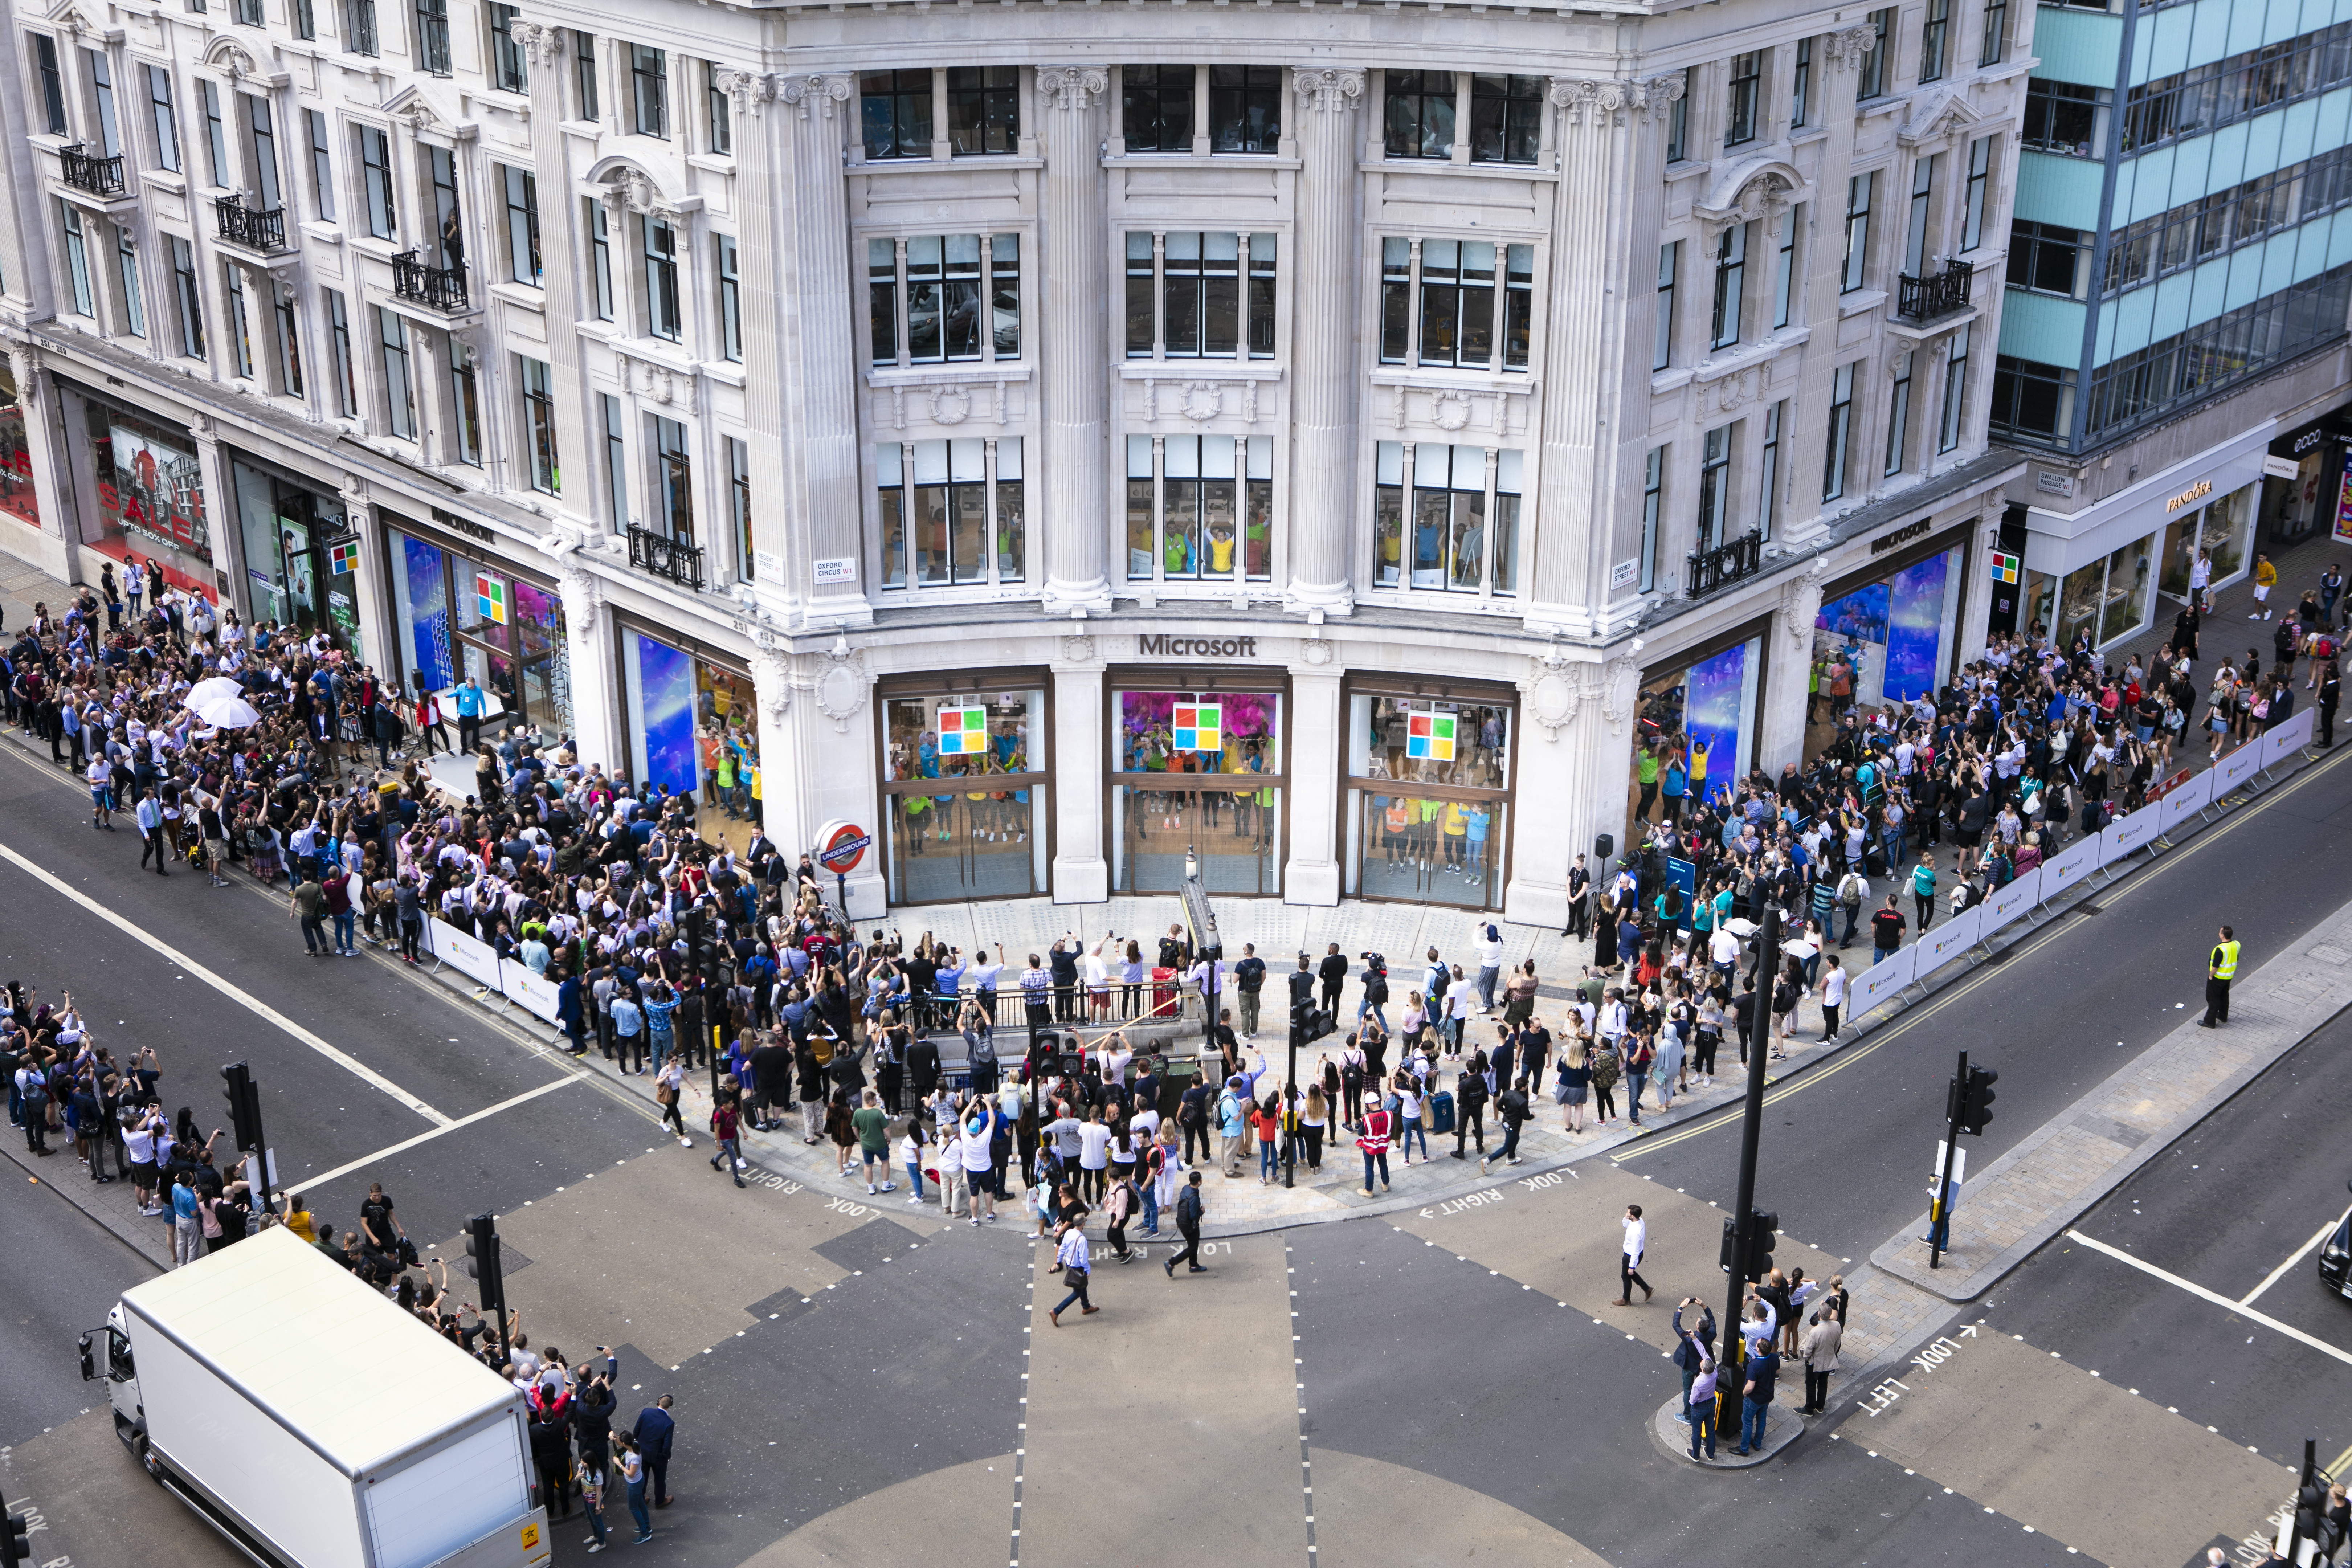 An aerial view of the new Microsoft store in London